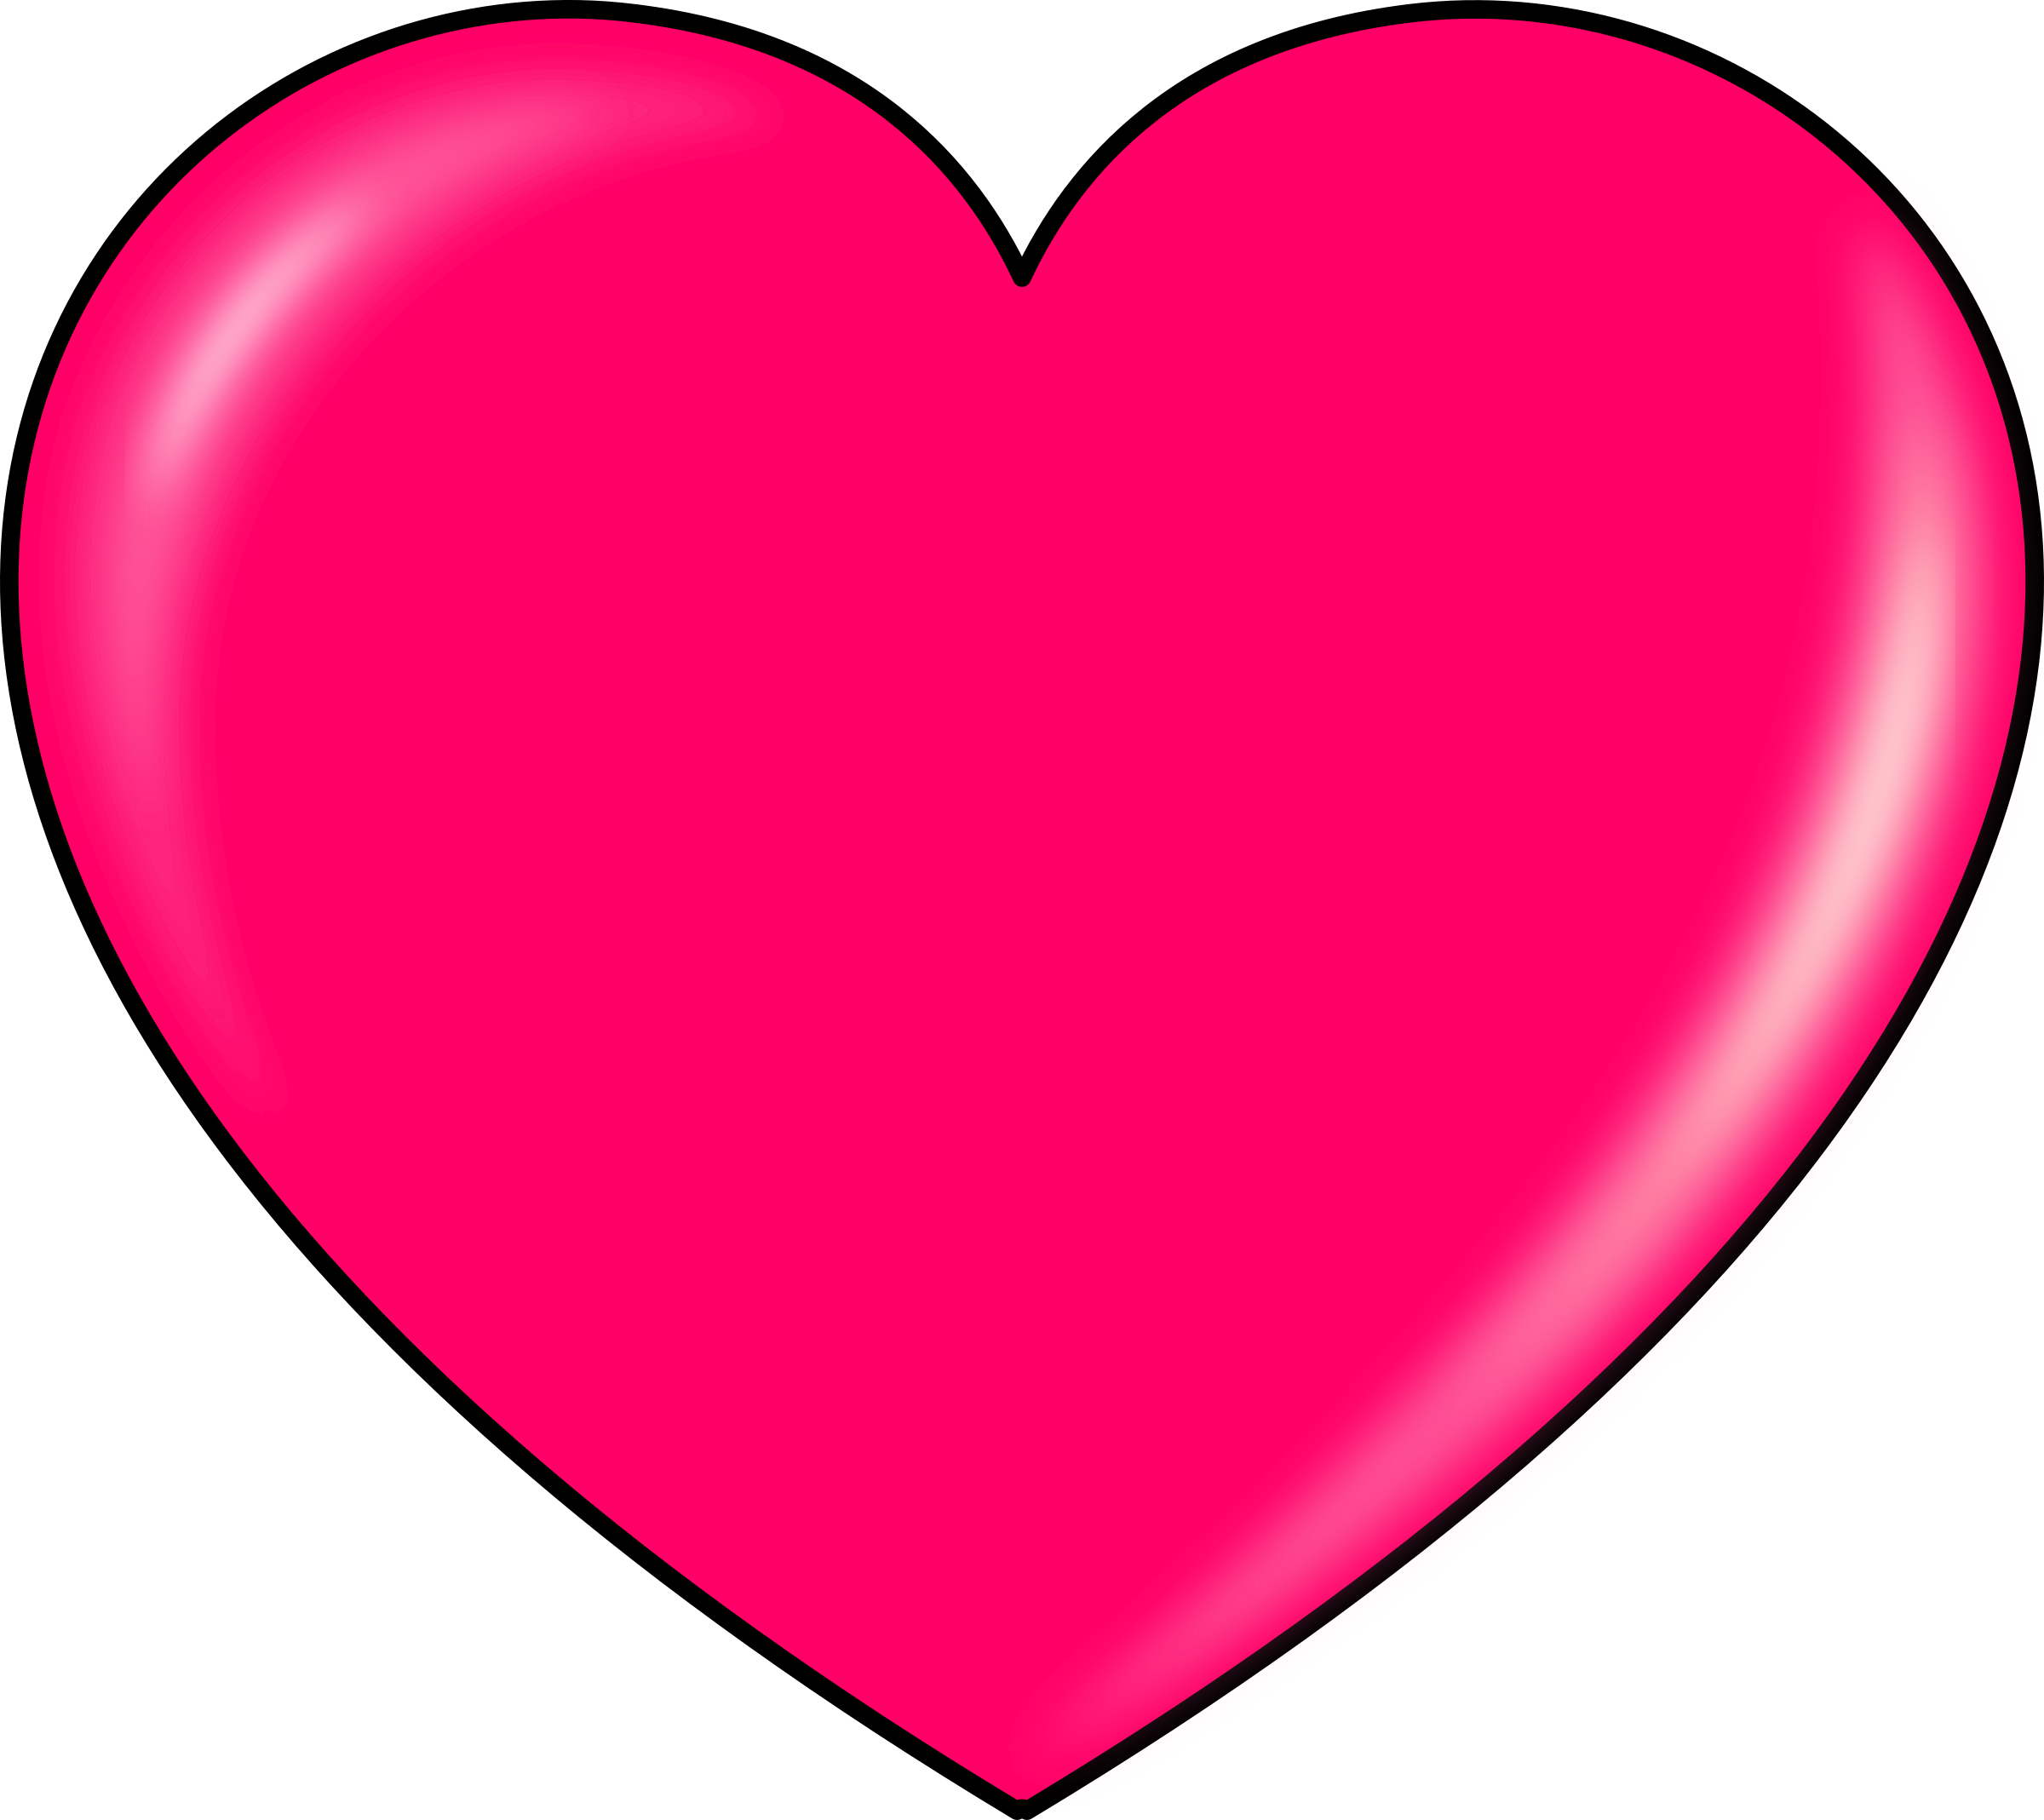 Hearts clipart joined Pink pink heart heart Clipart